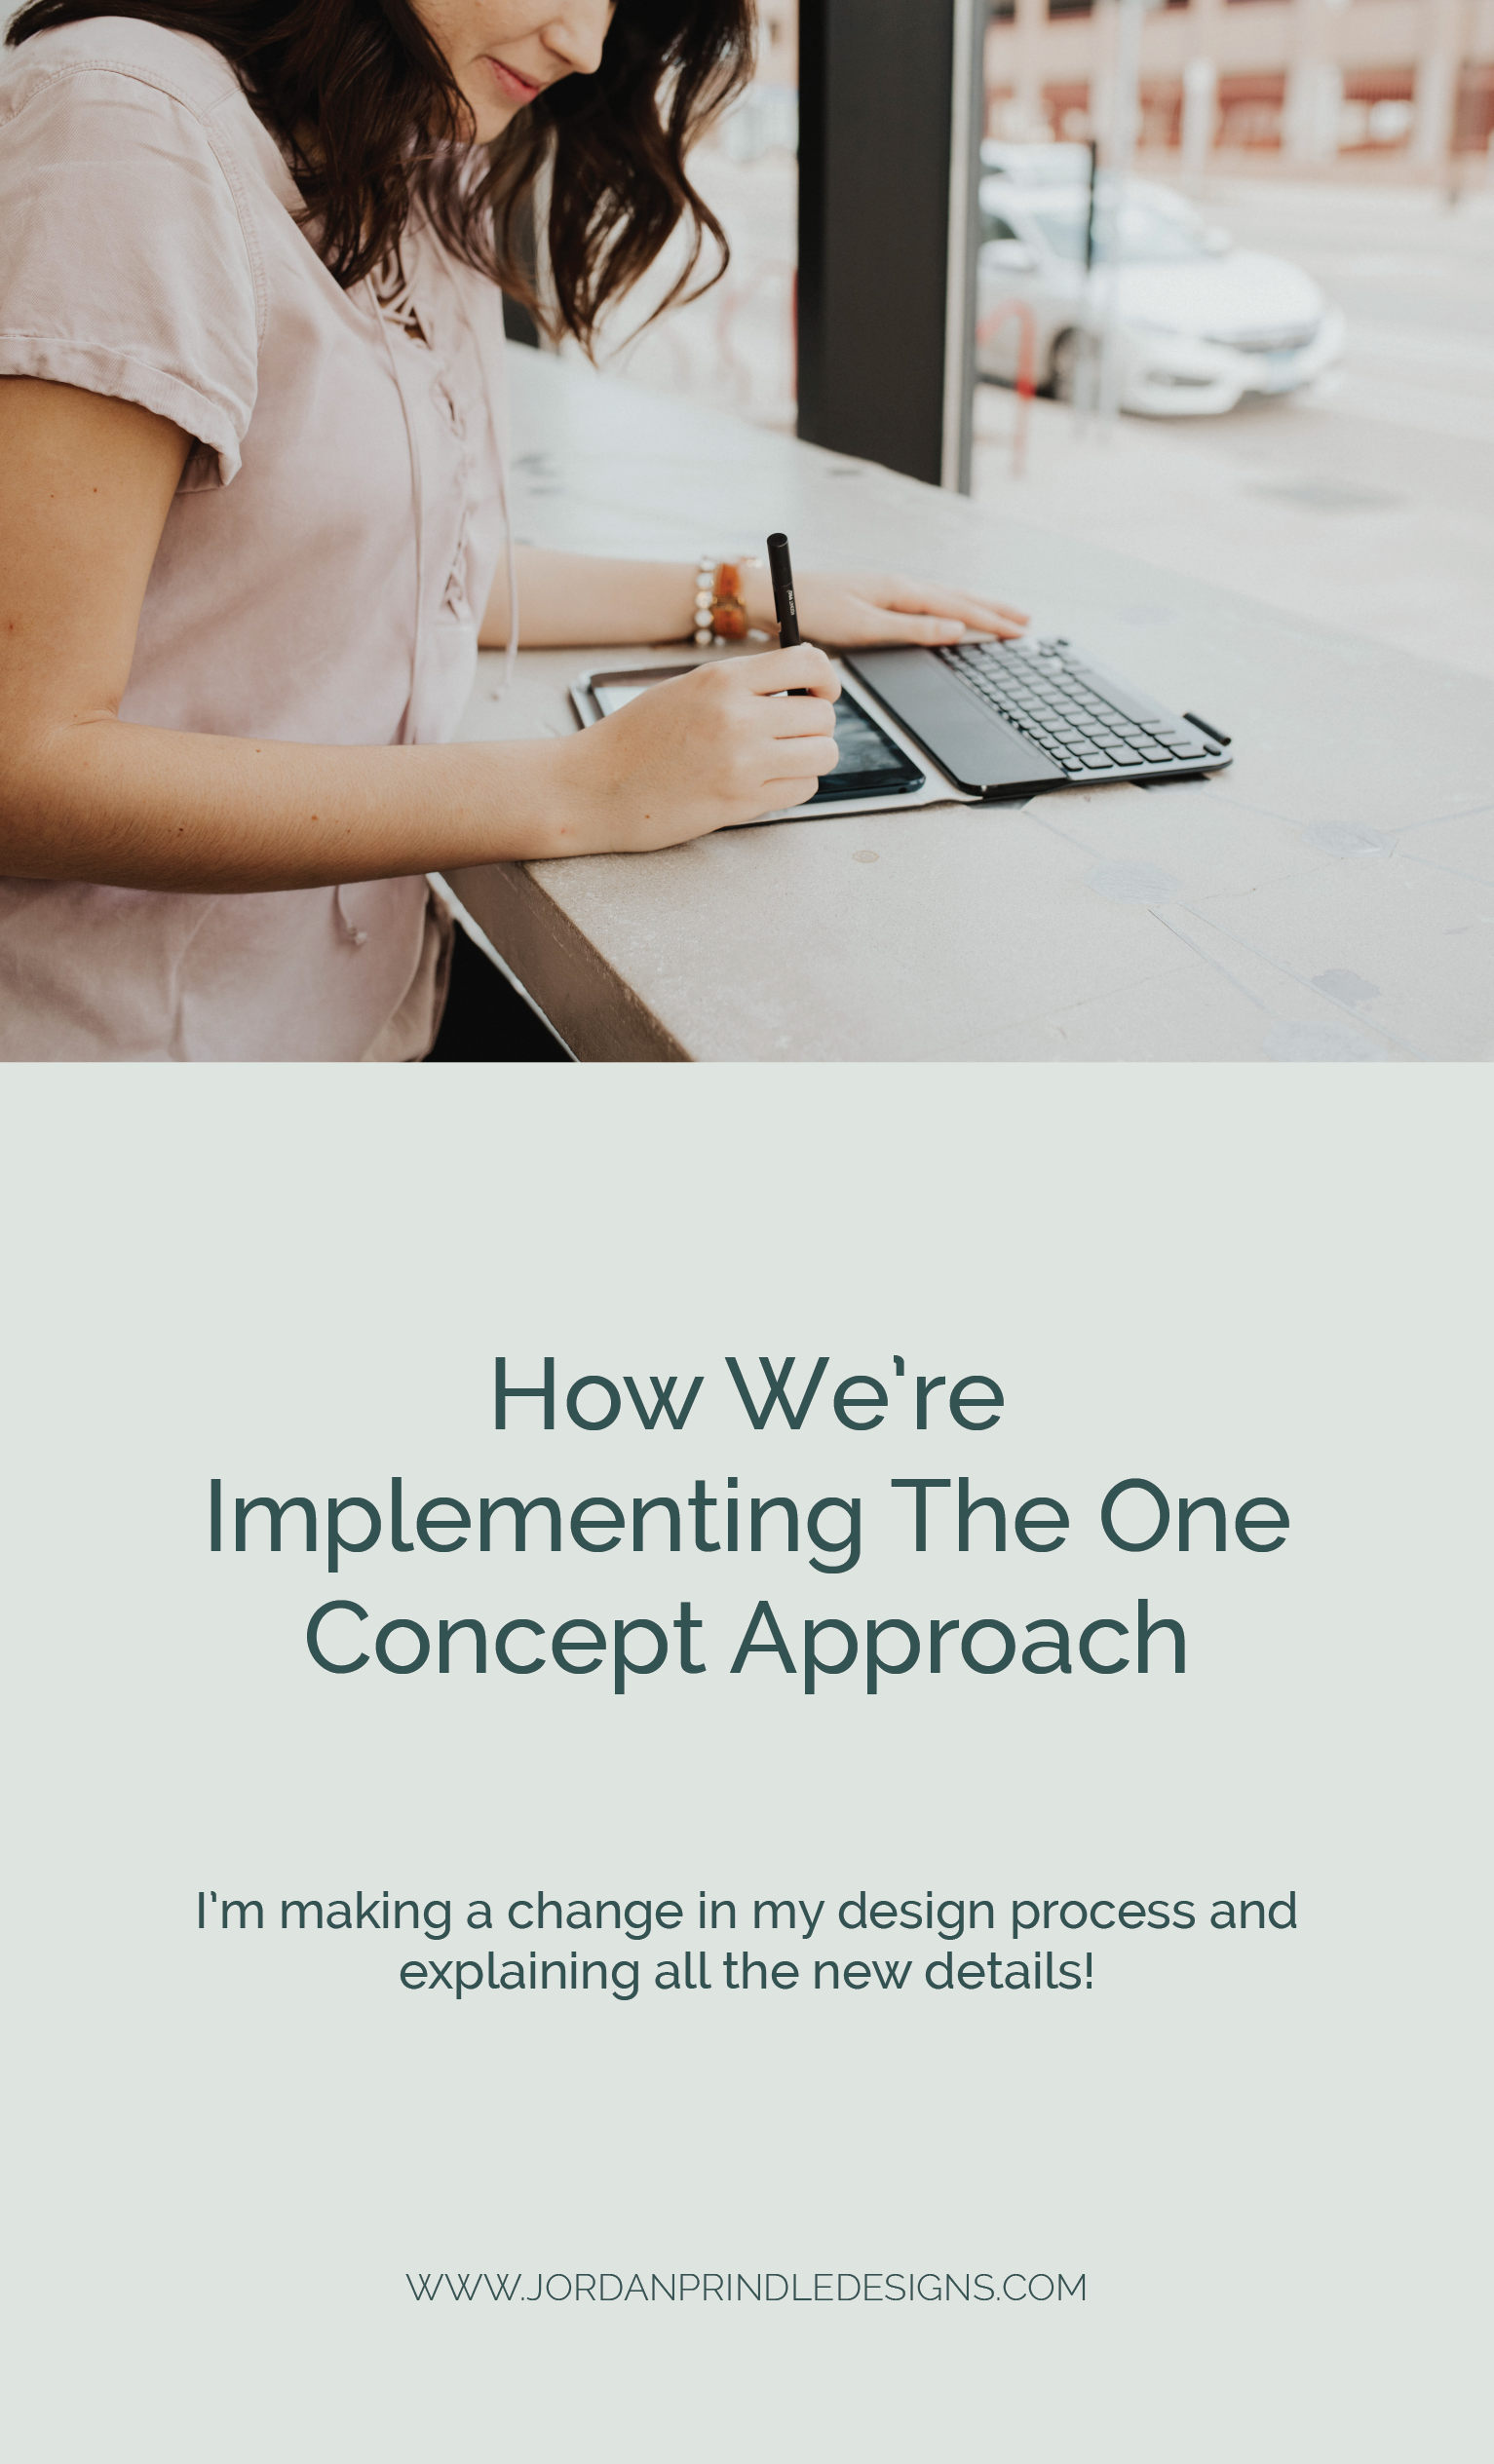 How We're Implementing The One Concept Approach | I am always evaluating and improving my brand design process. The one concept approach is the latest update. Learn more at www.jordanprindledesigns.com #oneconceptapproach #branddesign #customlogodesign